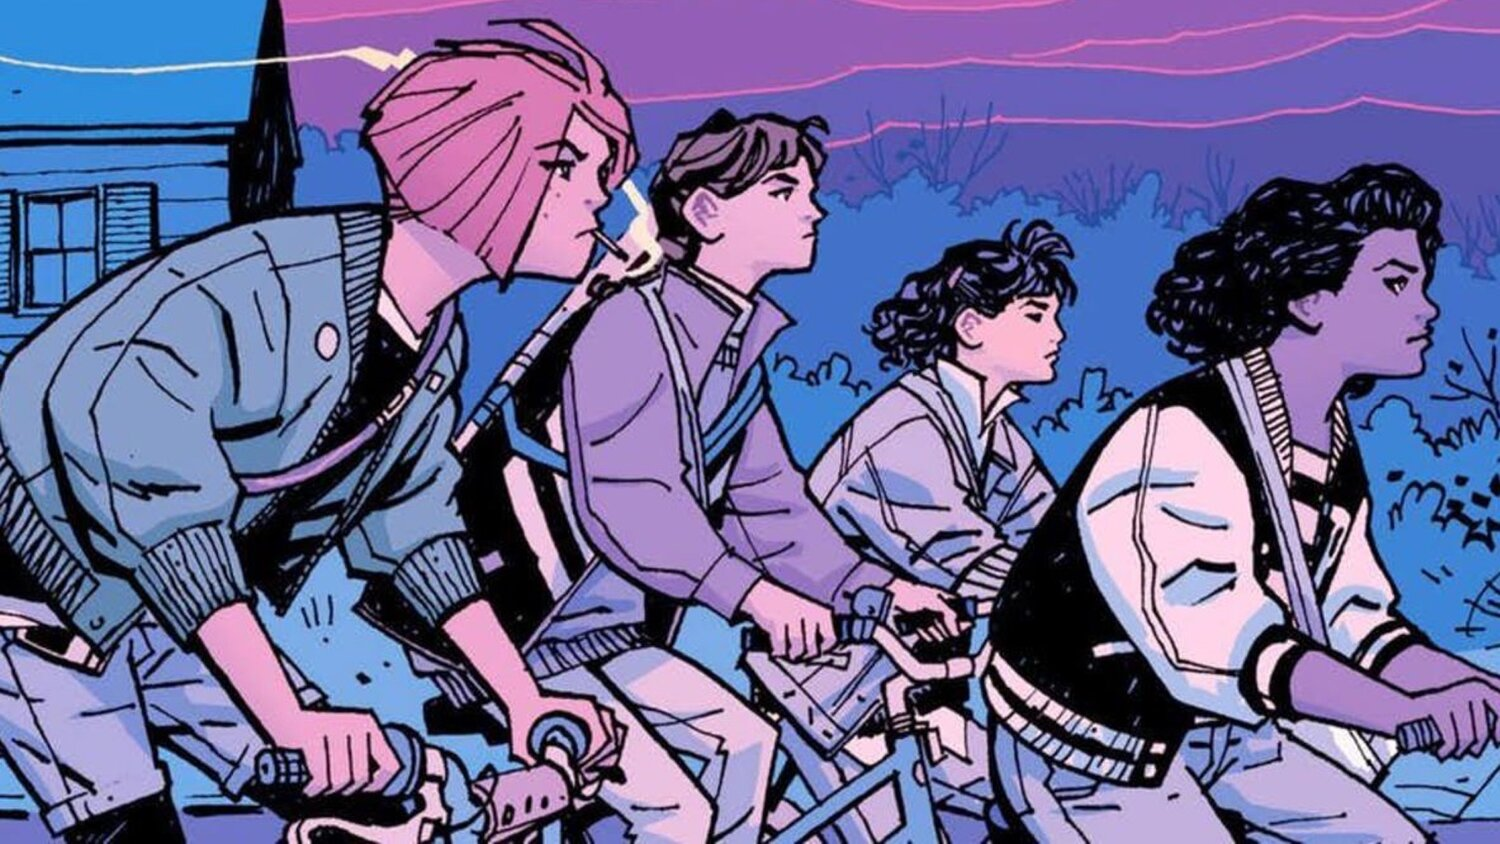 Amazon Officially Announces Series Adaptation of Brian K. Vaughan's Comic PAPER GIRLS